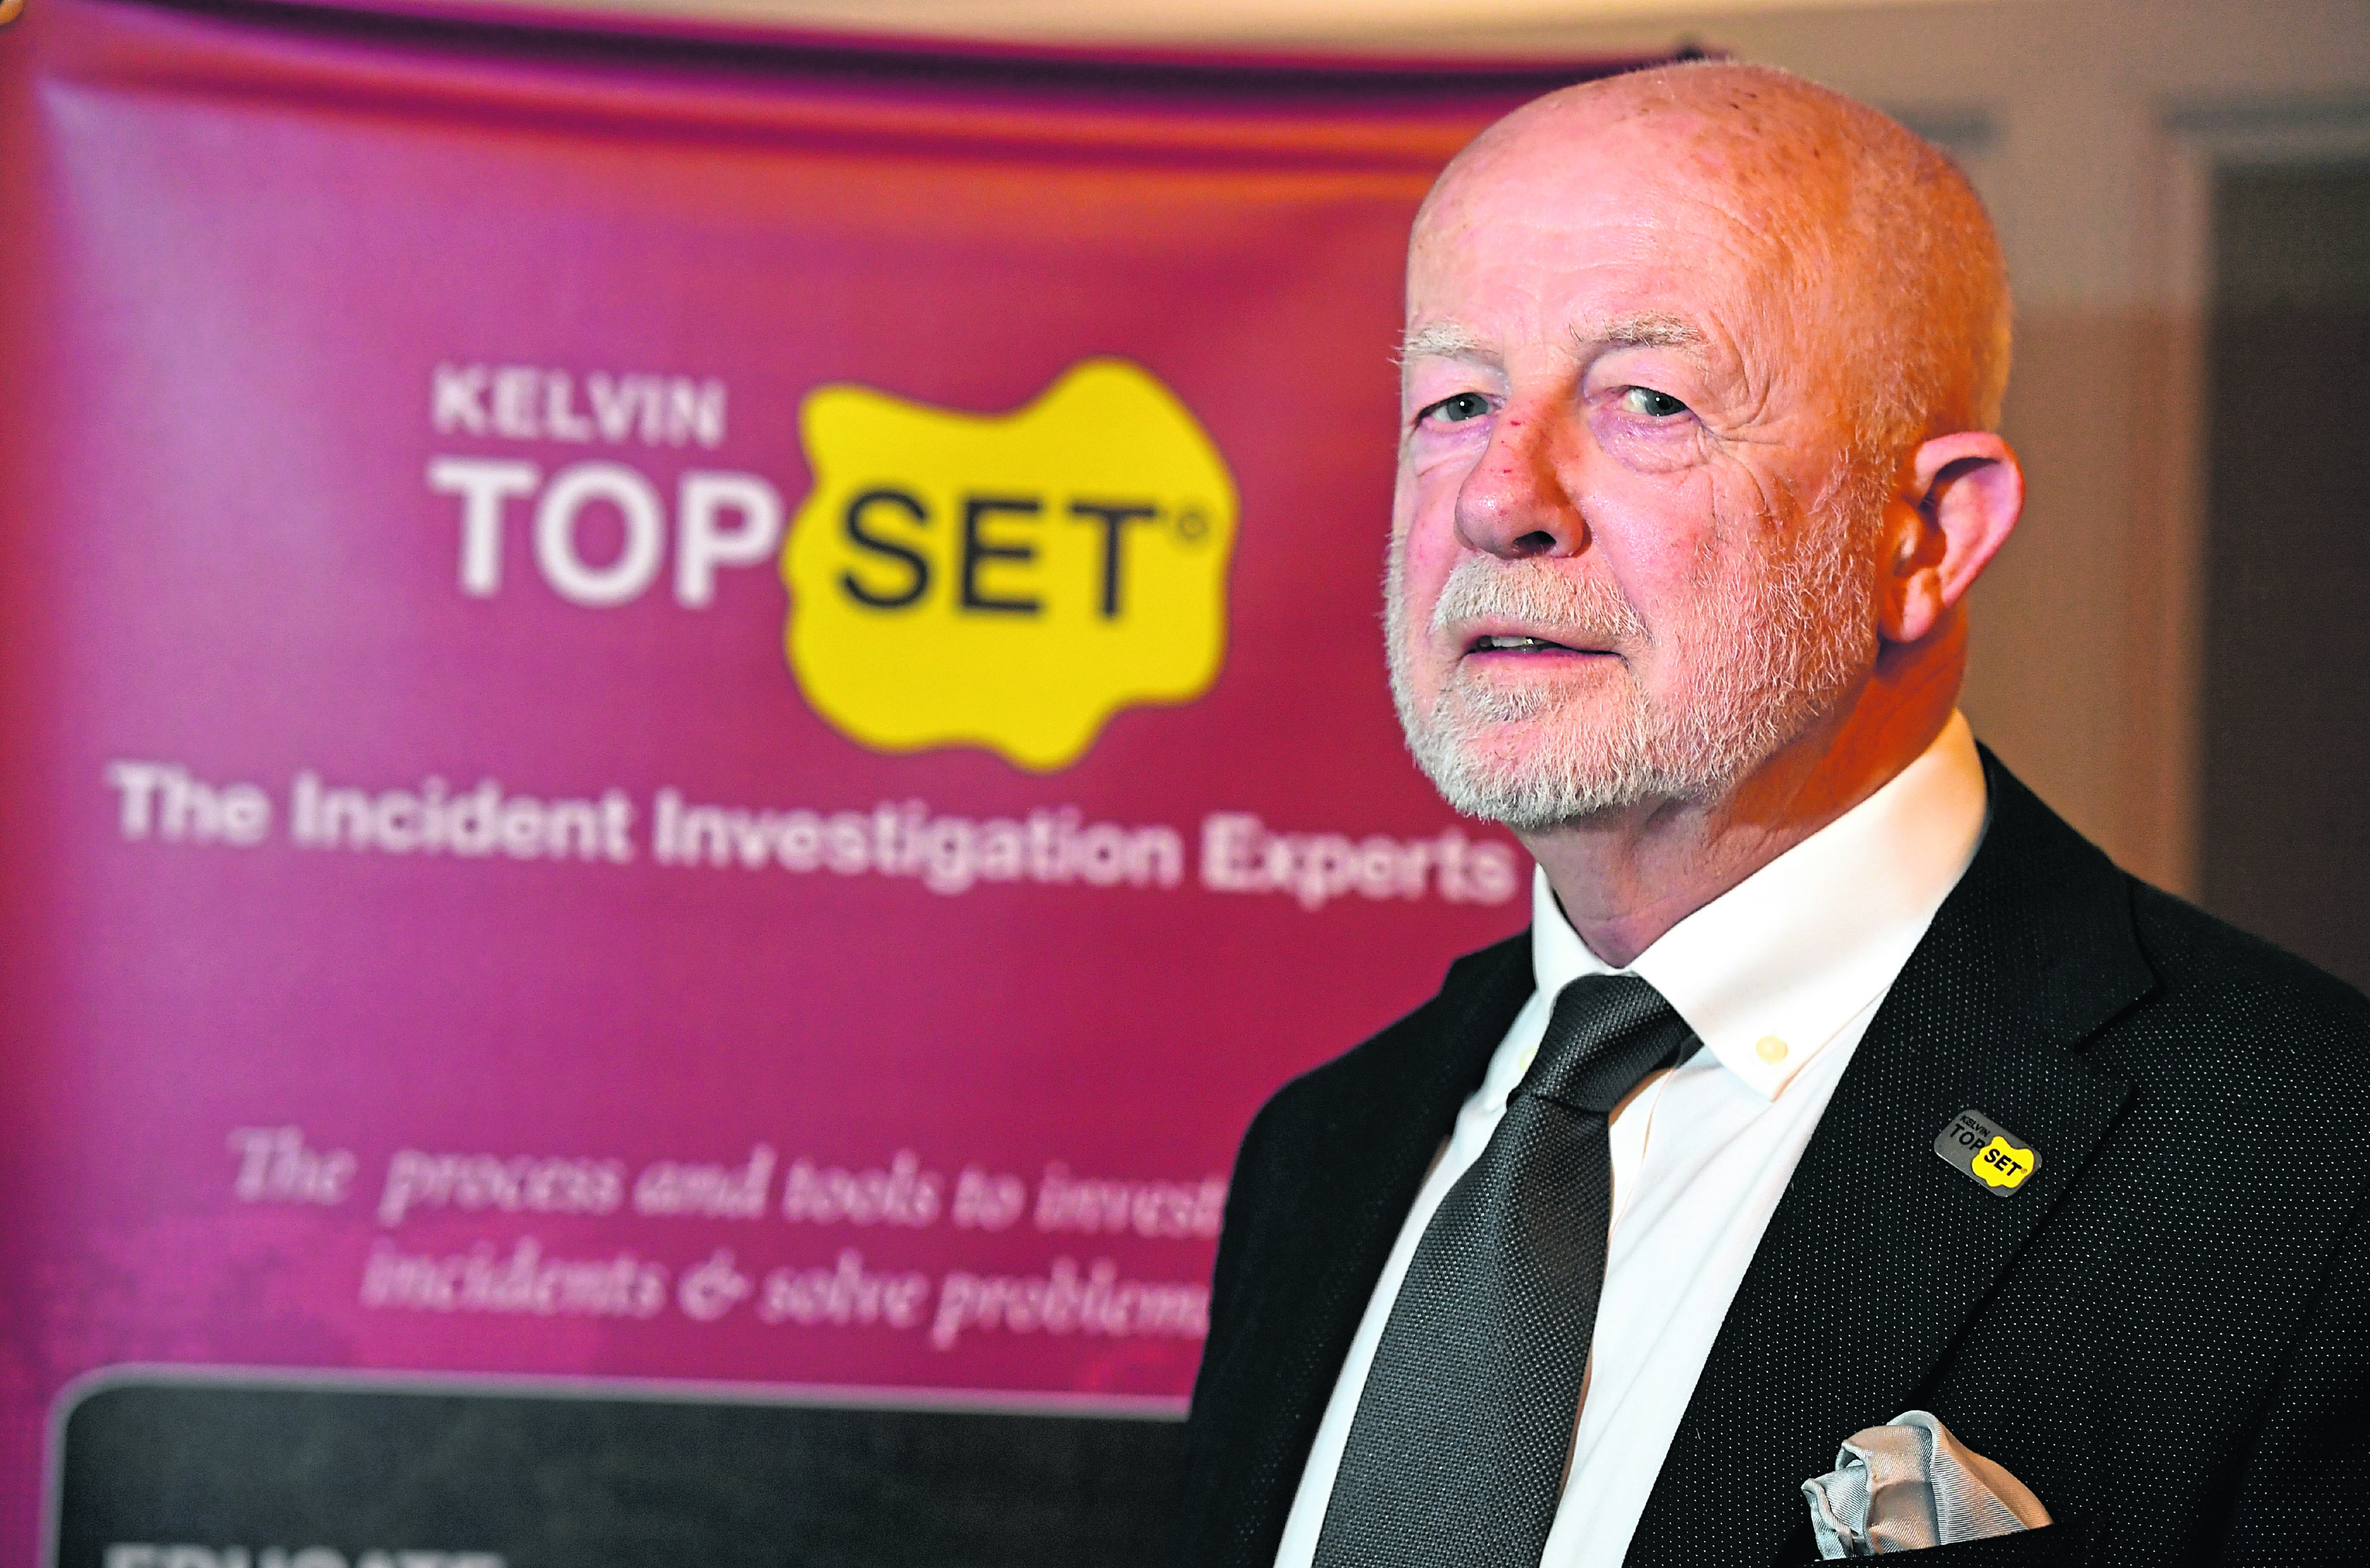 David Ramsay, Group Managing Director, Kelvin TOP-SET.